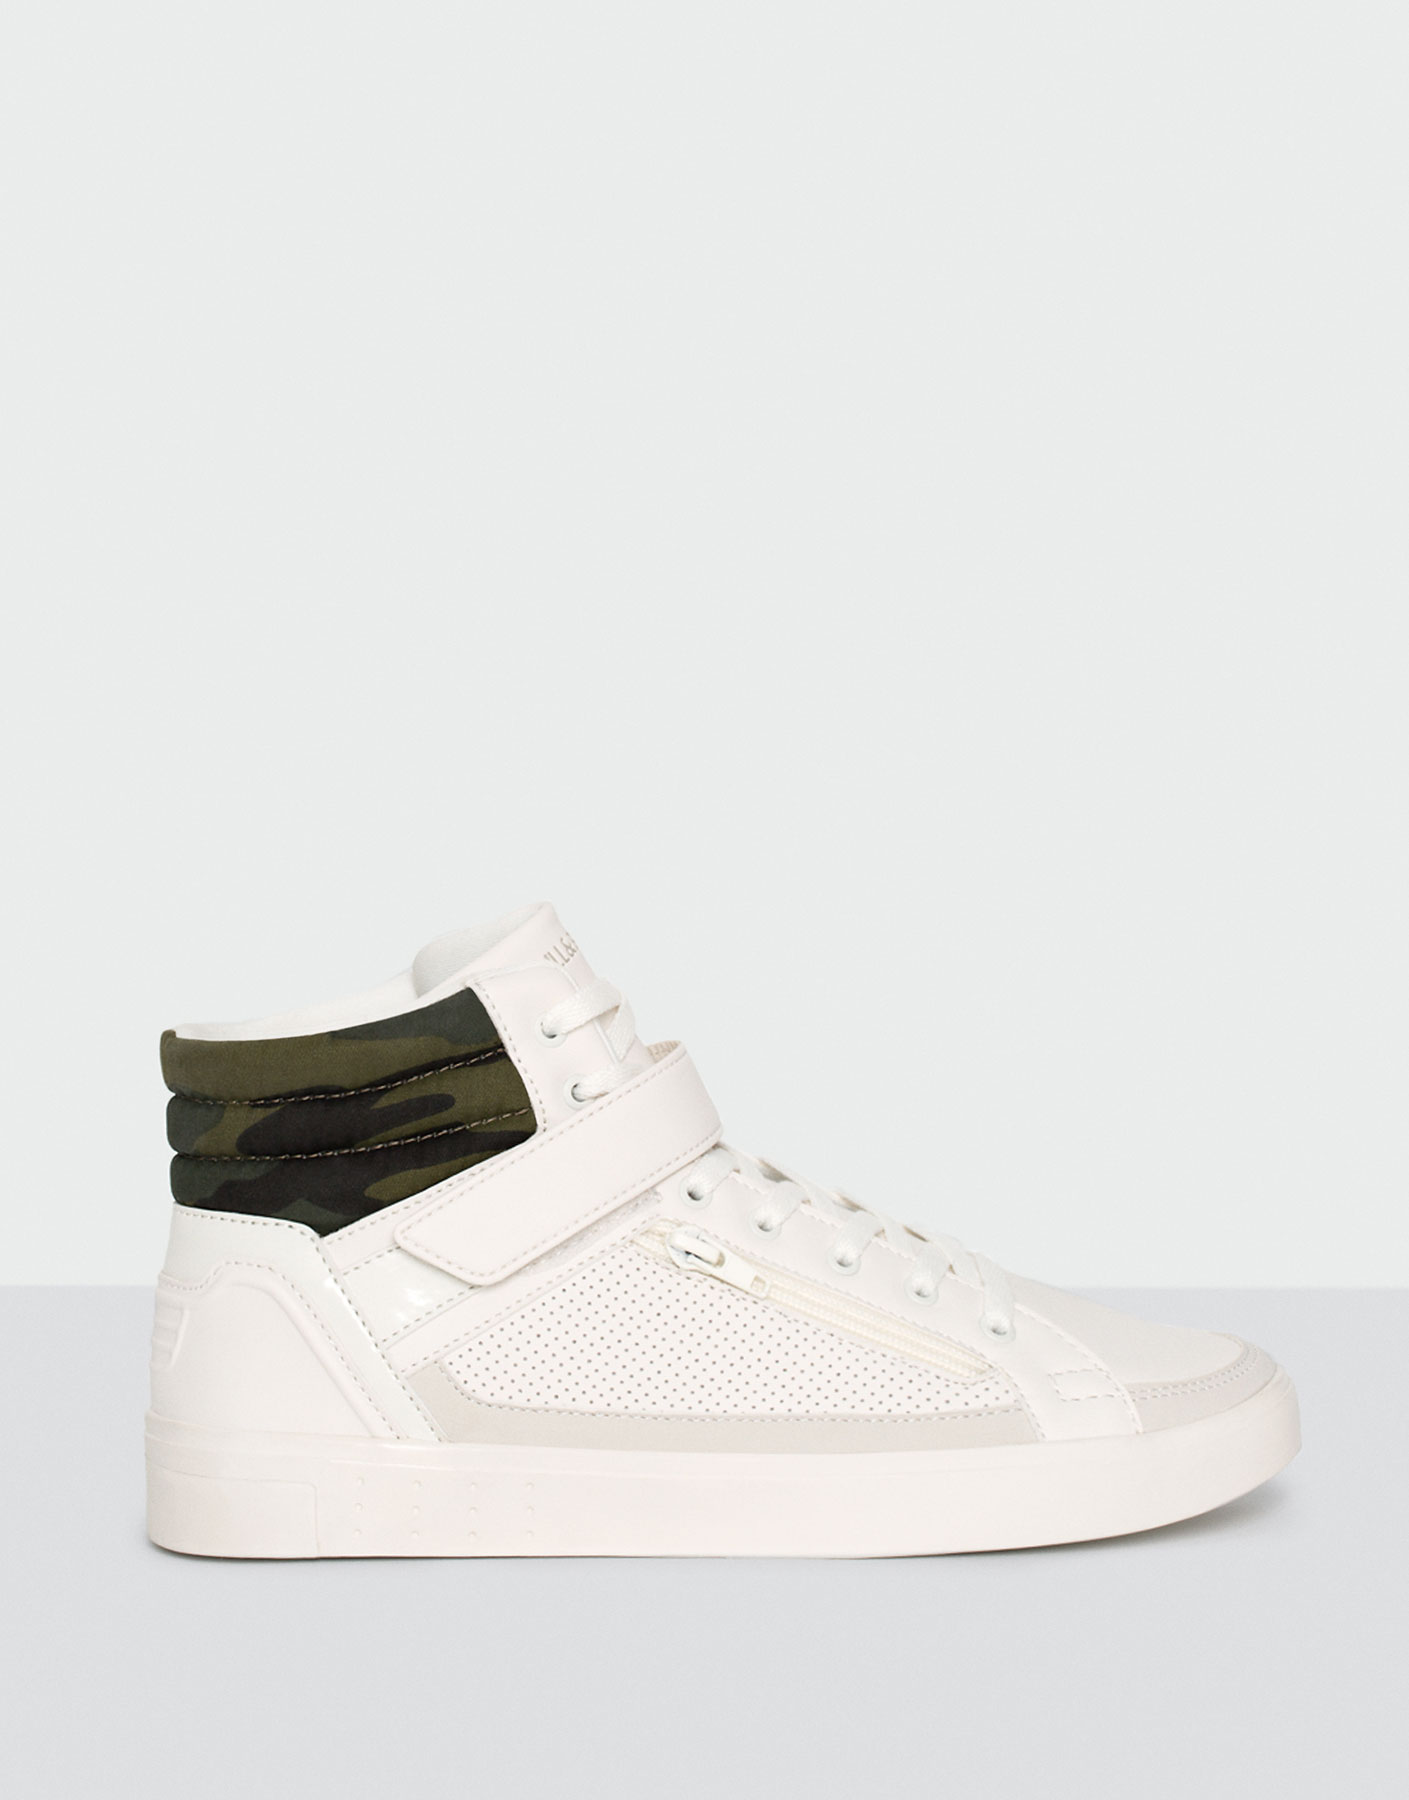 High-top sneakers with camouflage detail